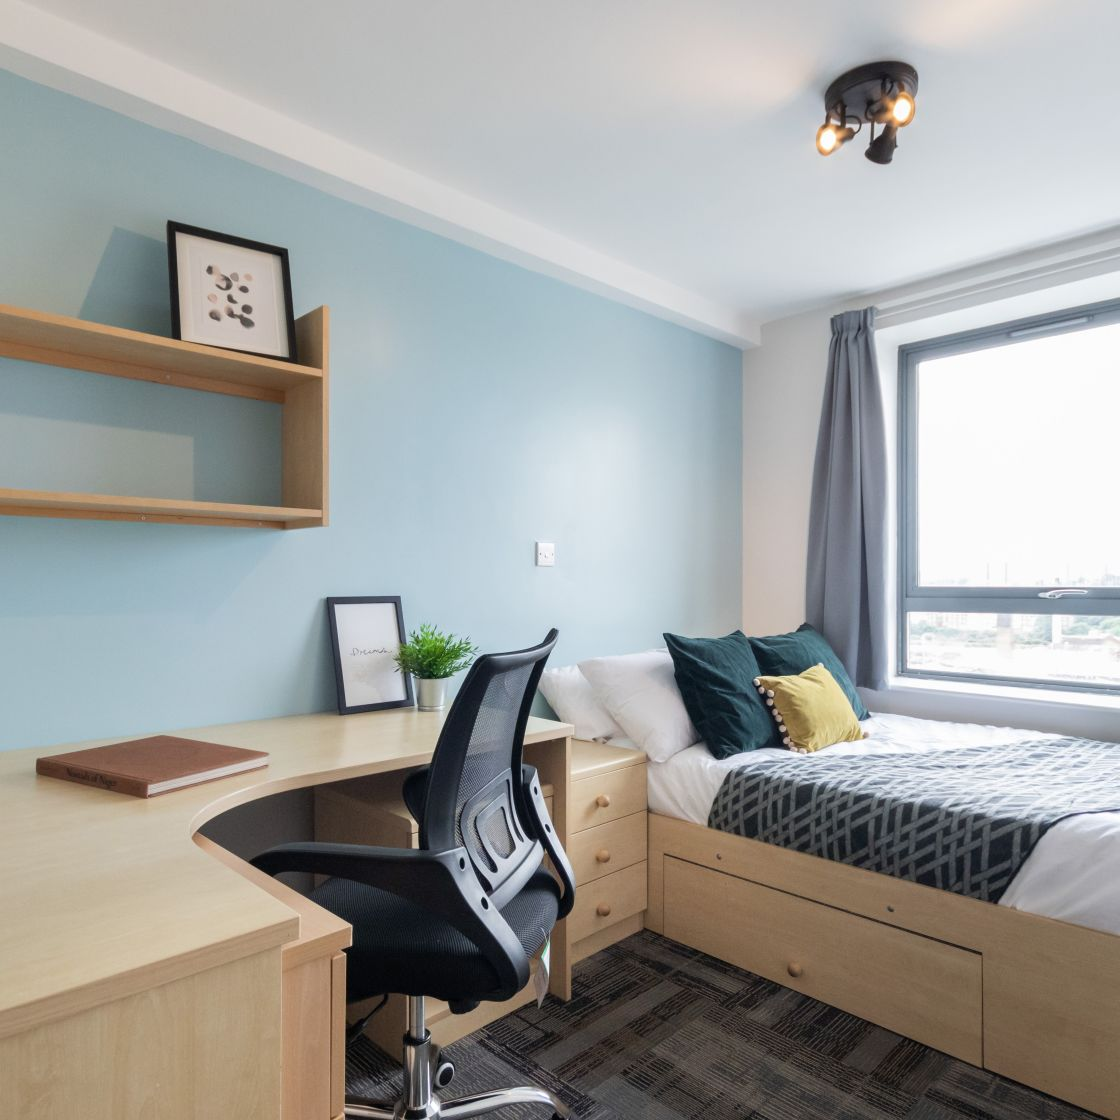 Standard Bedroom Student Apartment in Leeds with Double Bed and Desk. IconInc, Triangle